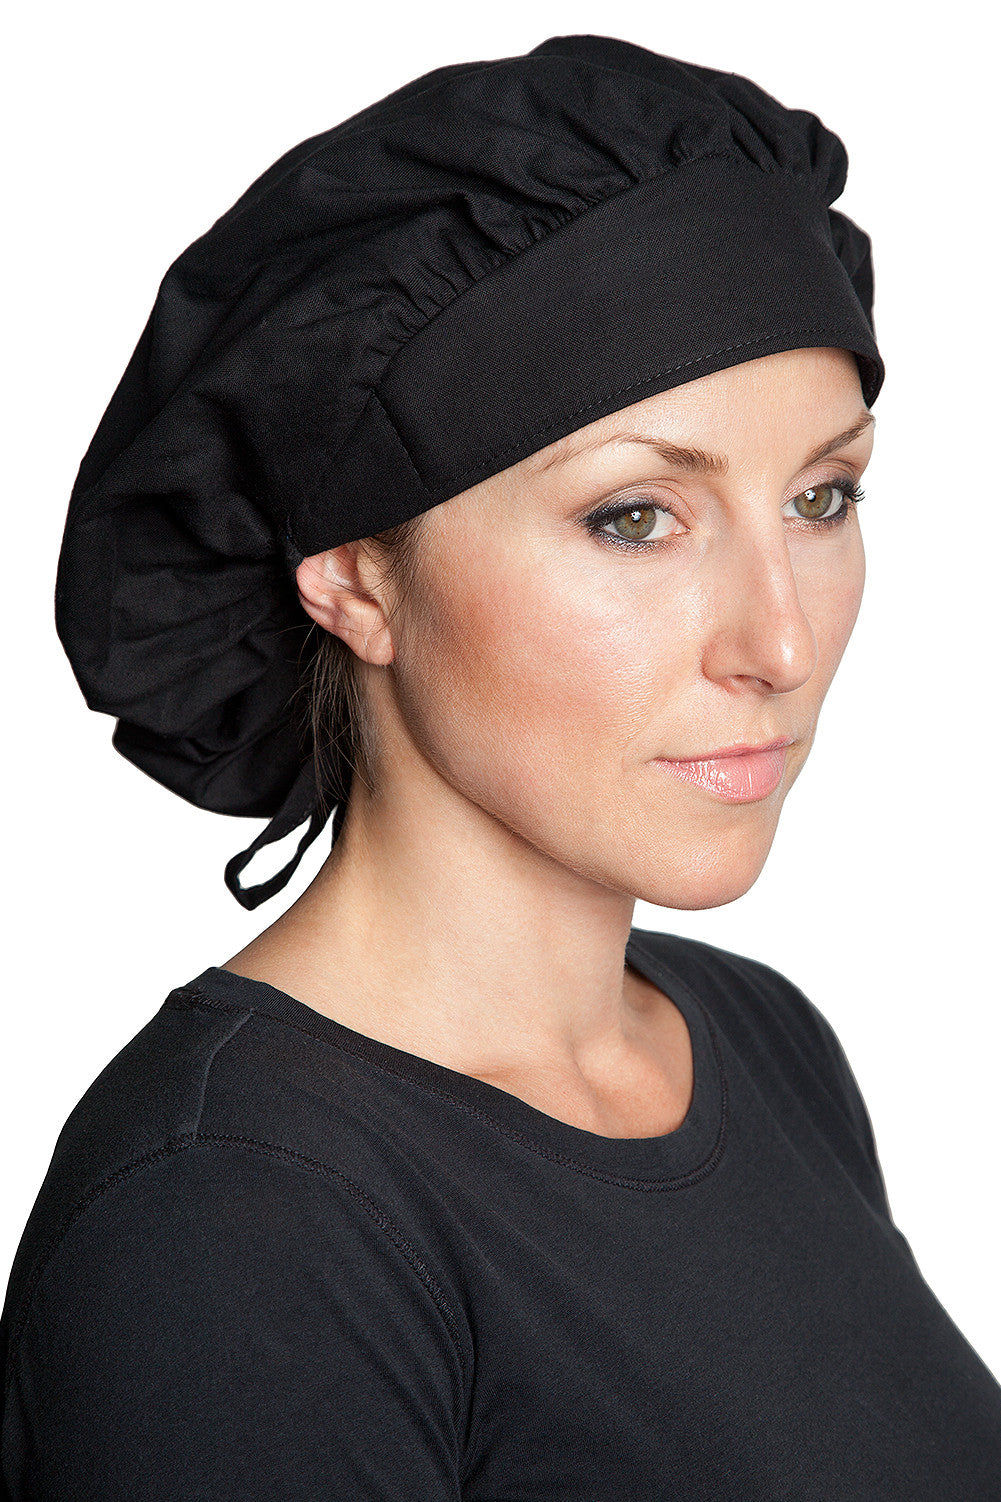 Fiumara Apparel Bouffant Cap Black